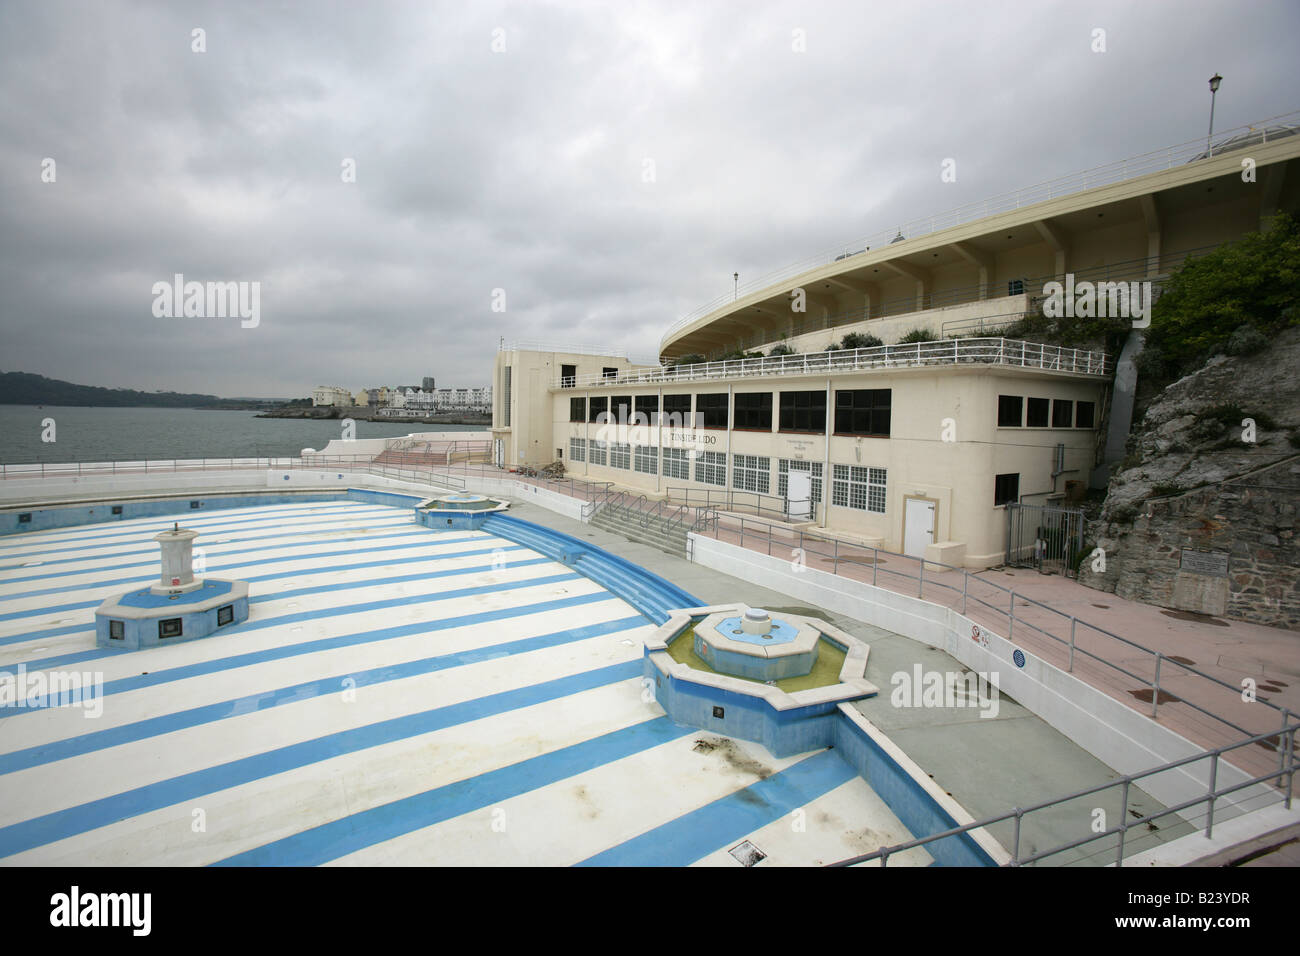 Plymouth lido stock photos plymouth lido stock images alamy for Opening swimming pool after winter